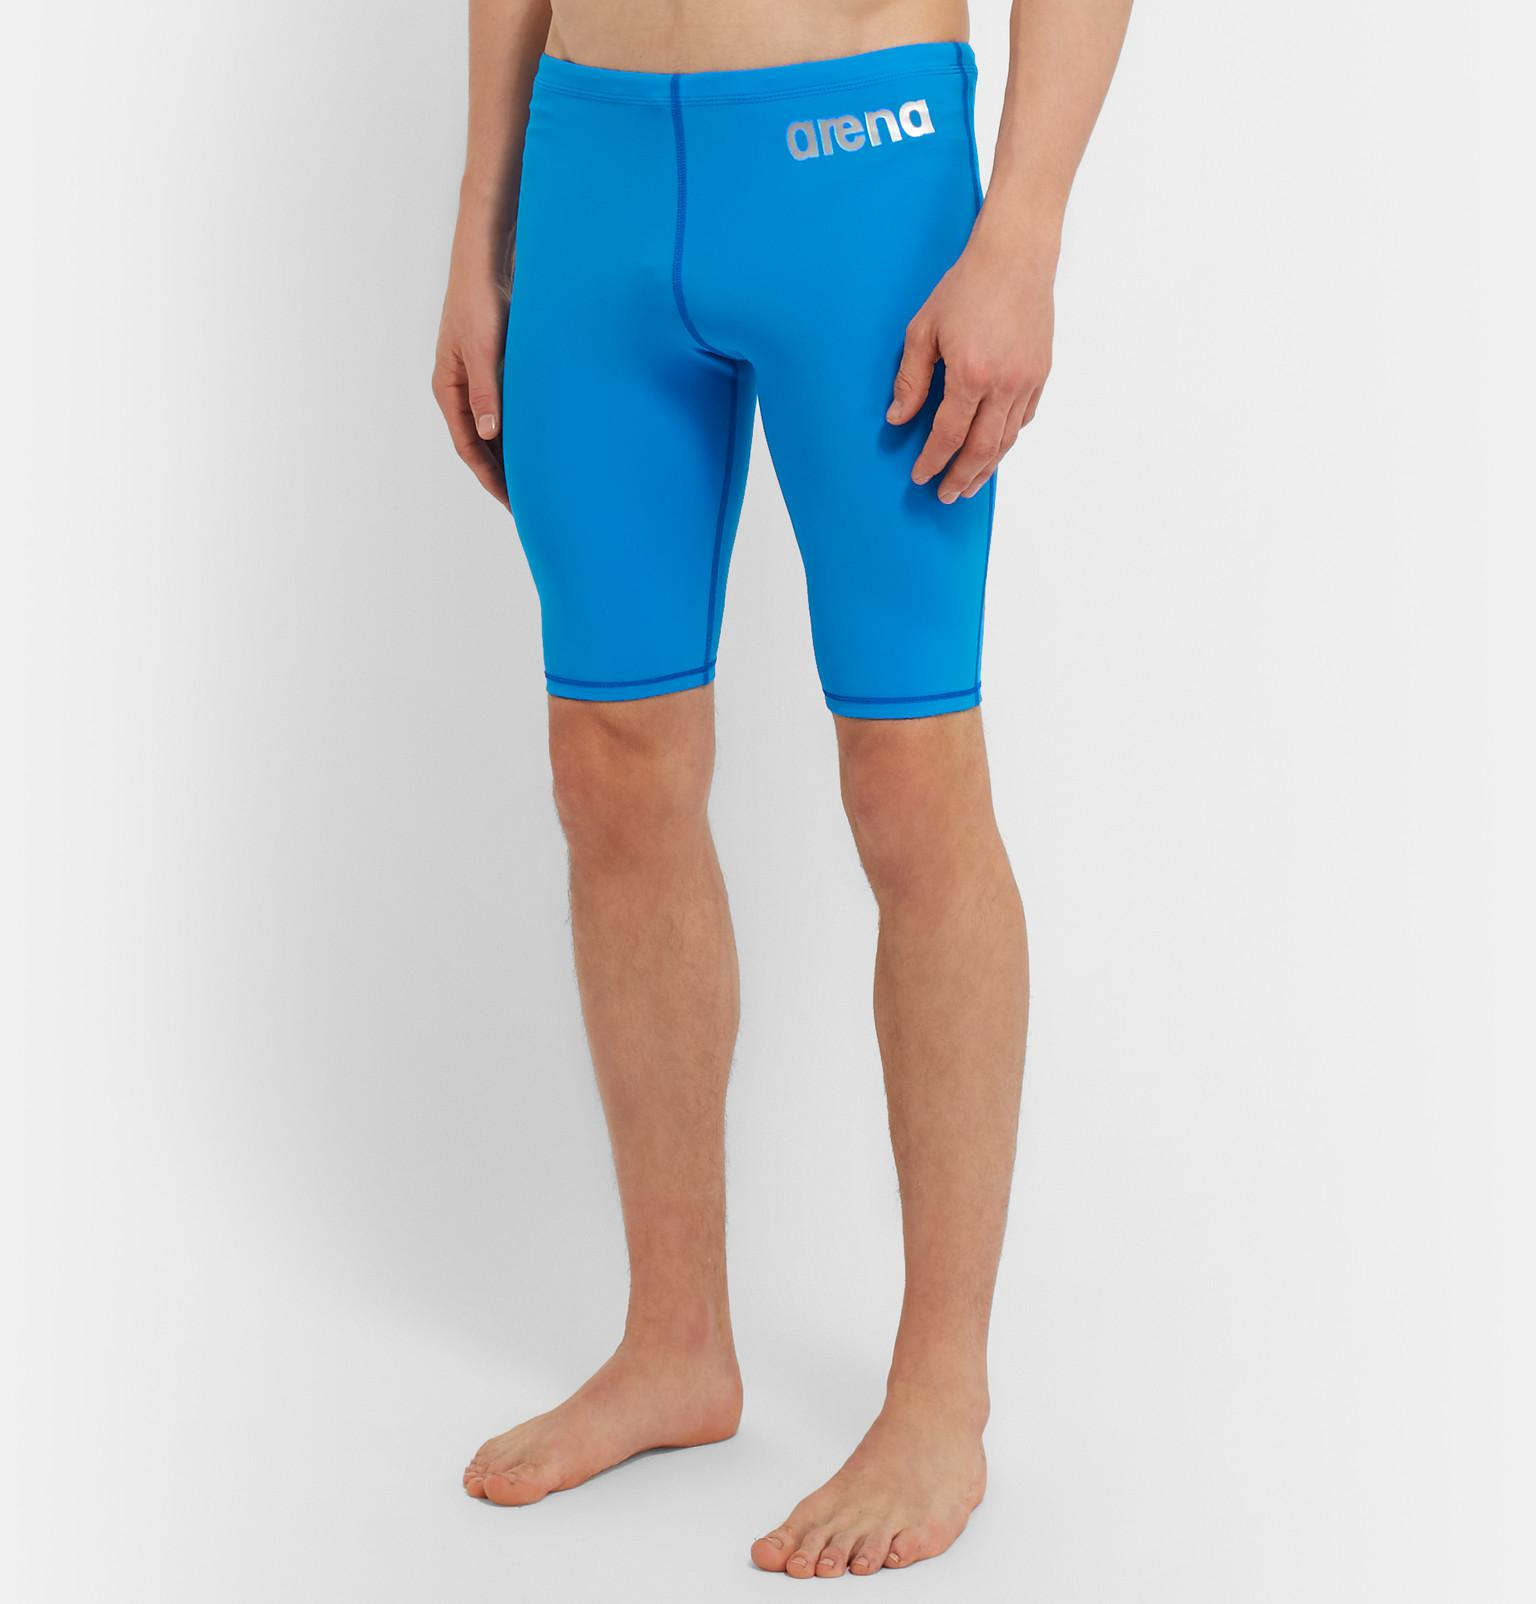 5607396ffe6f3 Arena Powerskin St Compression Swim Jammers in Blue for Men - Lyst